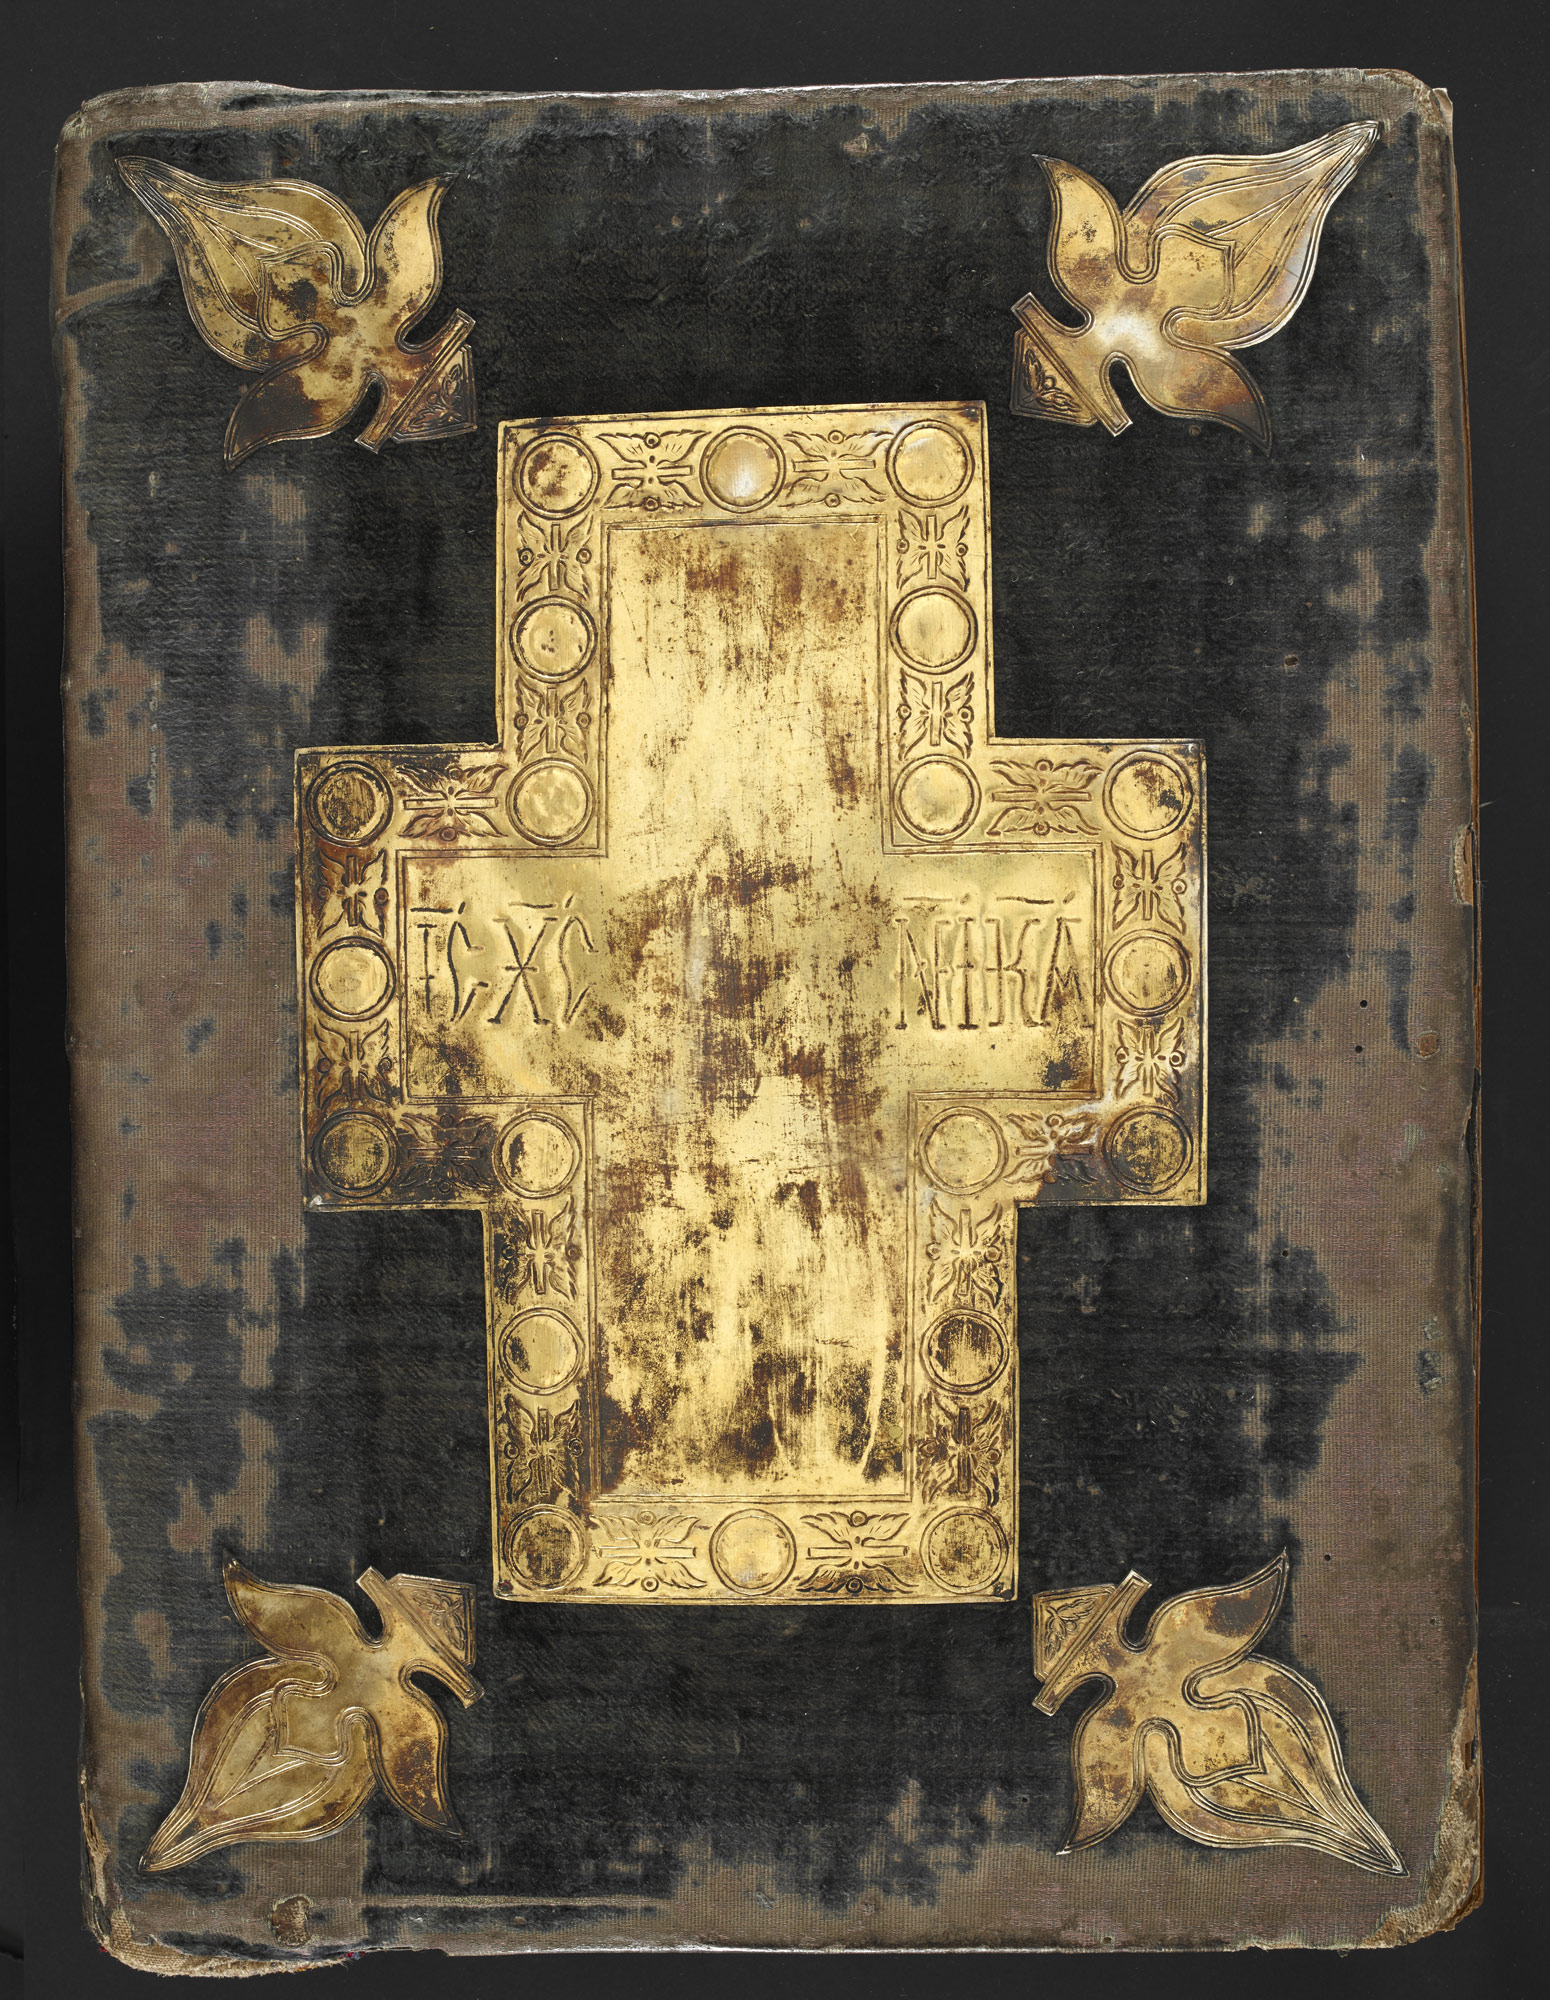 The Curzon Cruciform Lectionary (Add MS 39603 fblefr)